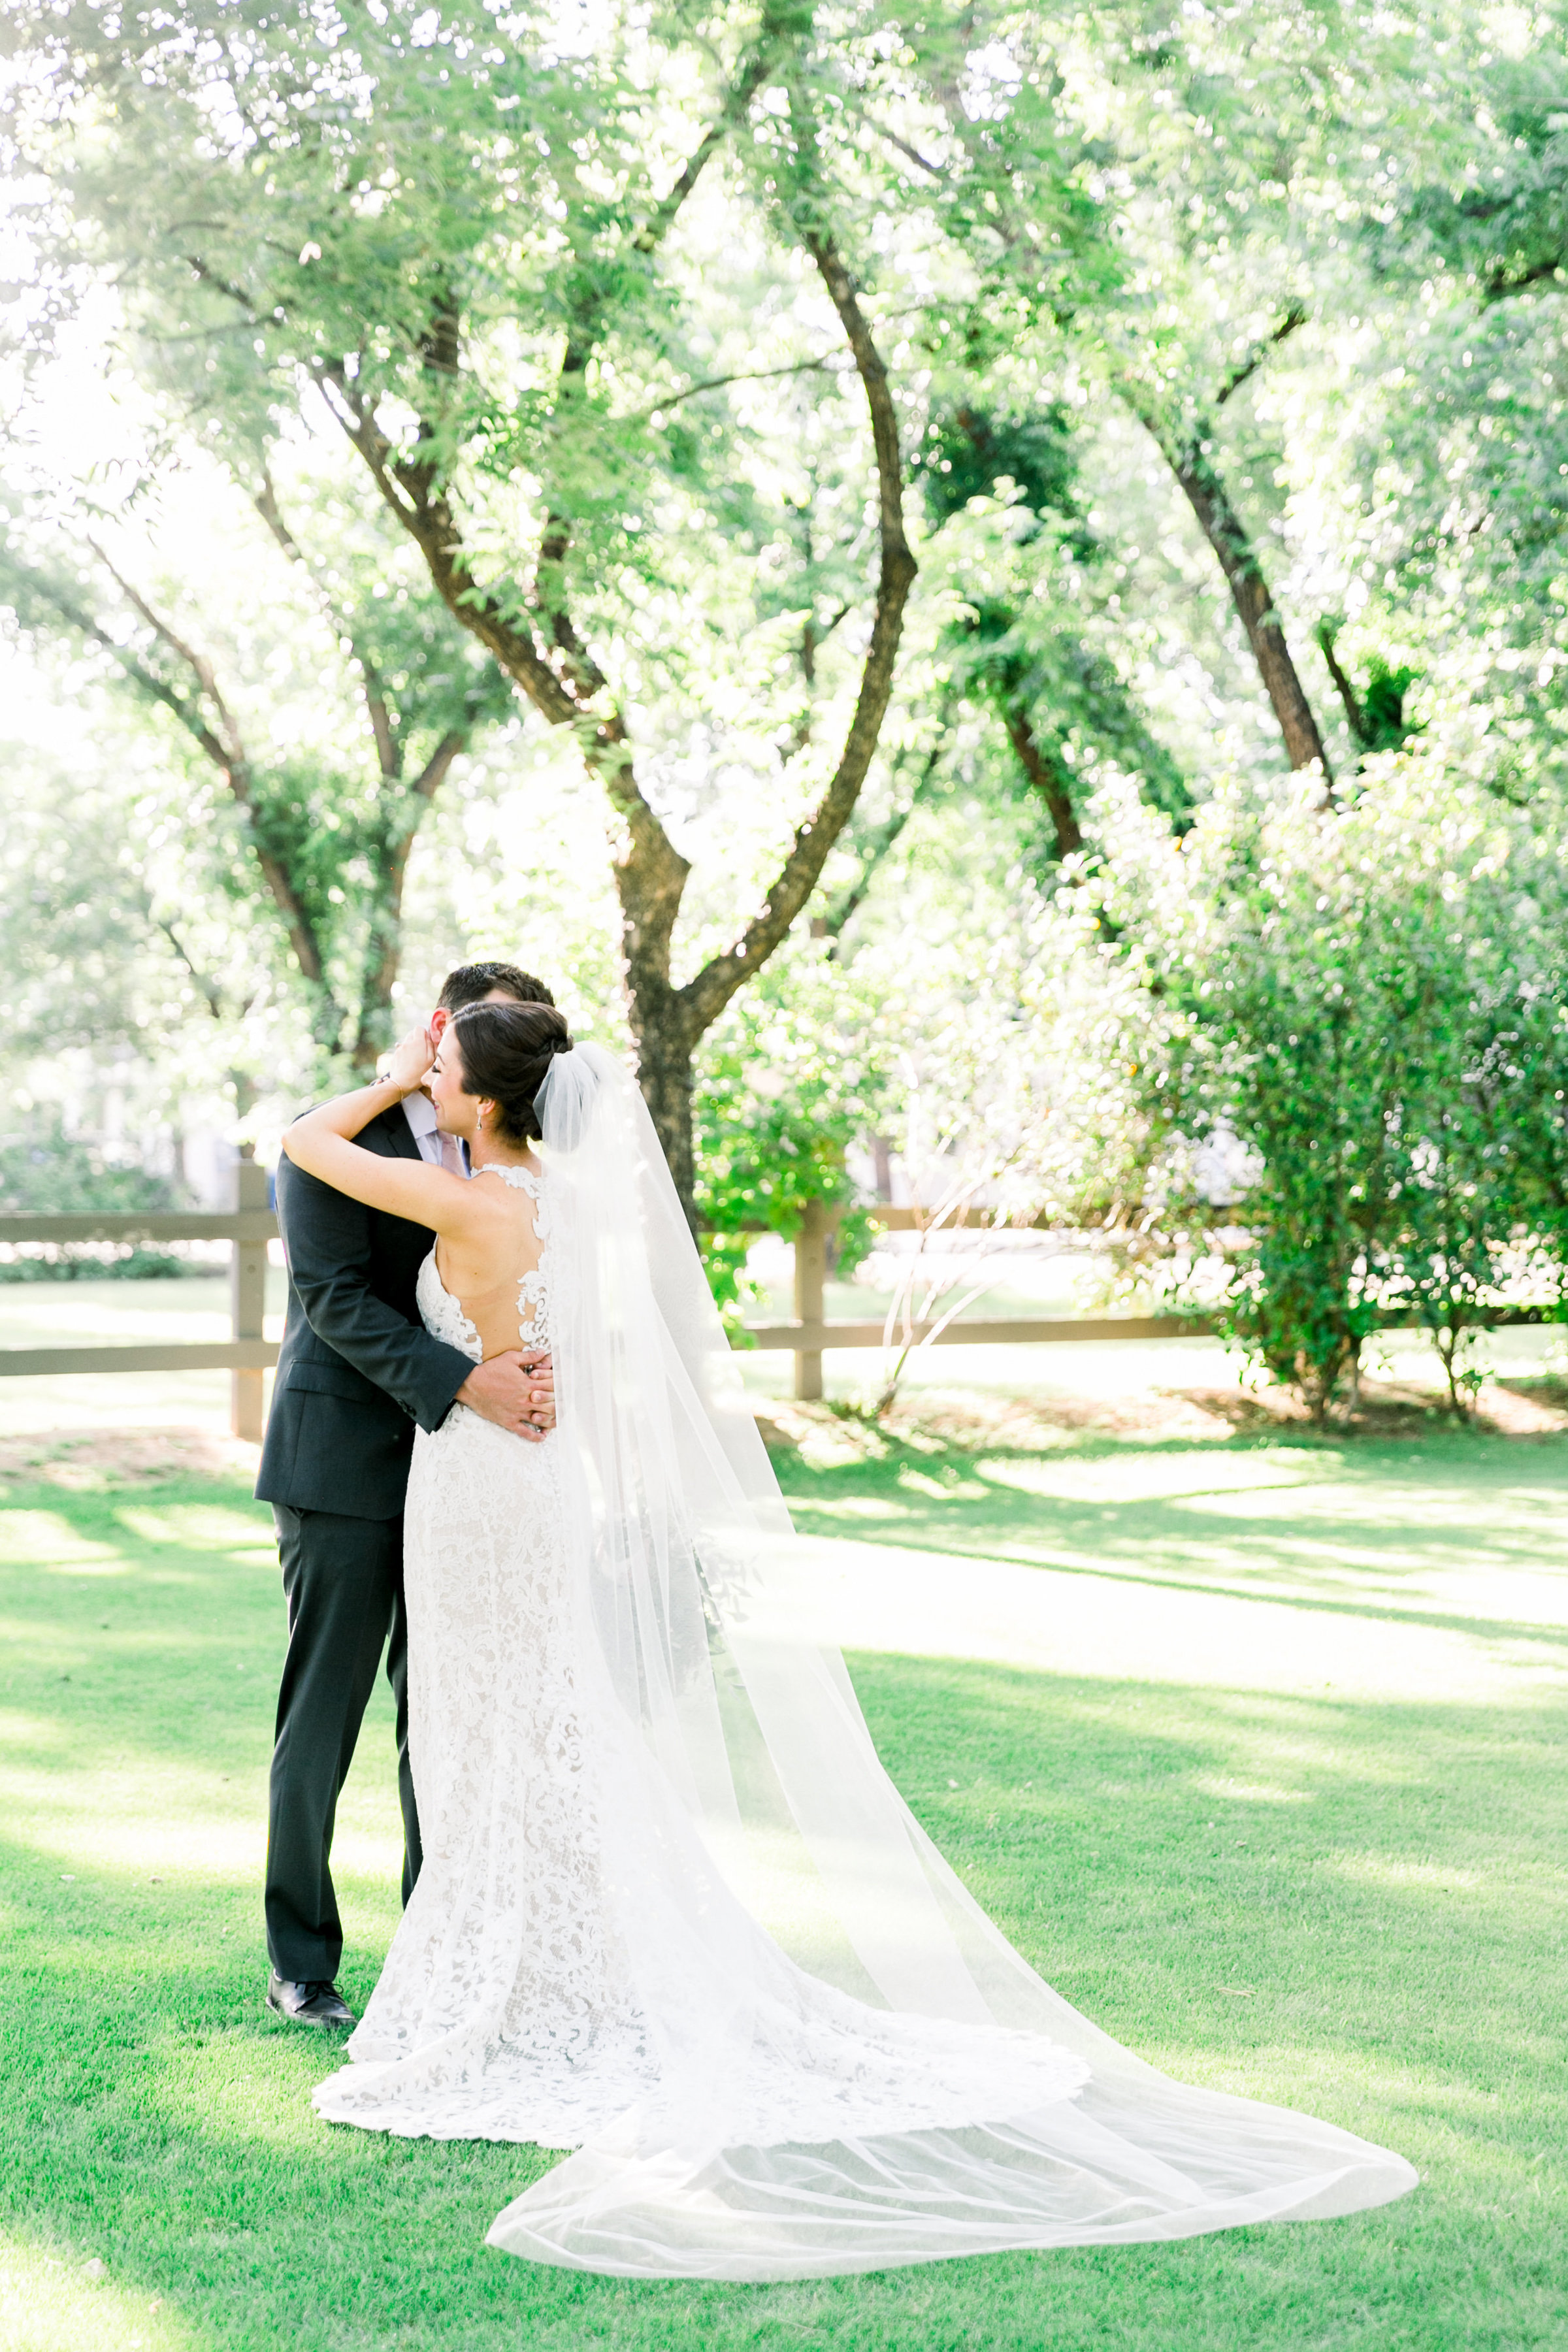 Karlie Colleen Photography - Venue At The Grove - Arizona Wedding - Maggie & Grant -60